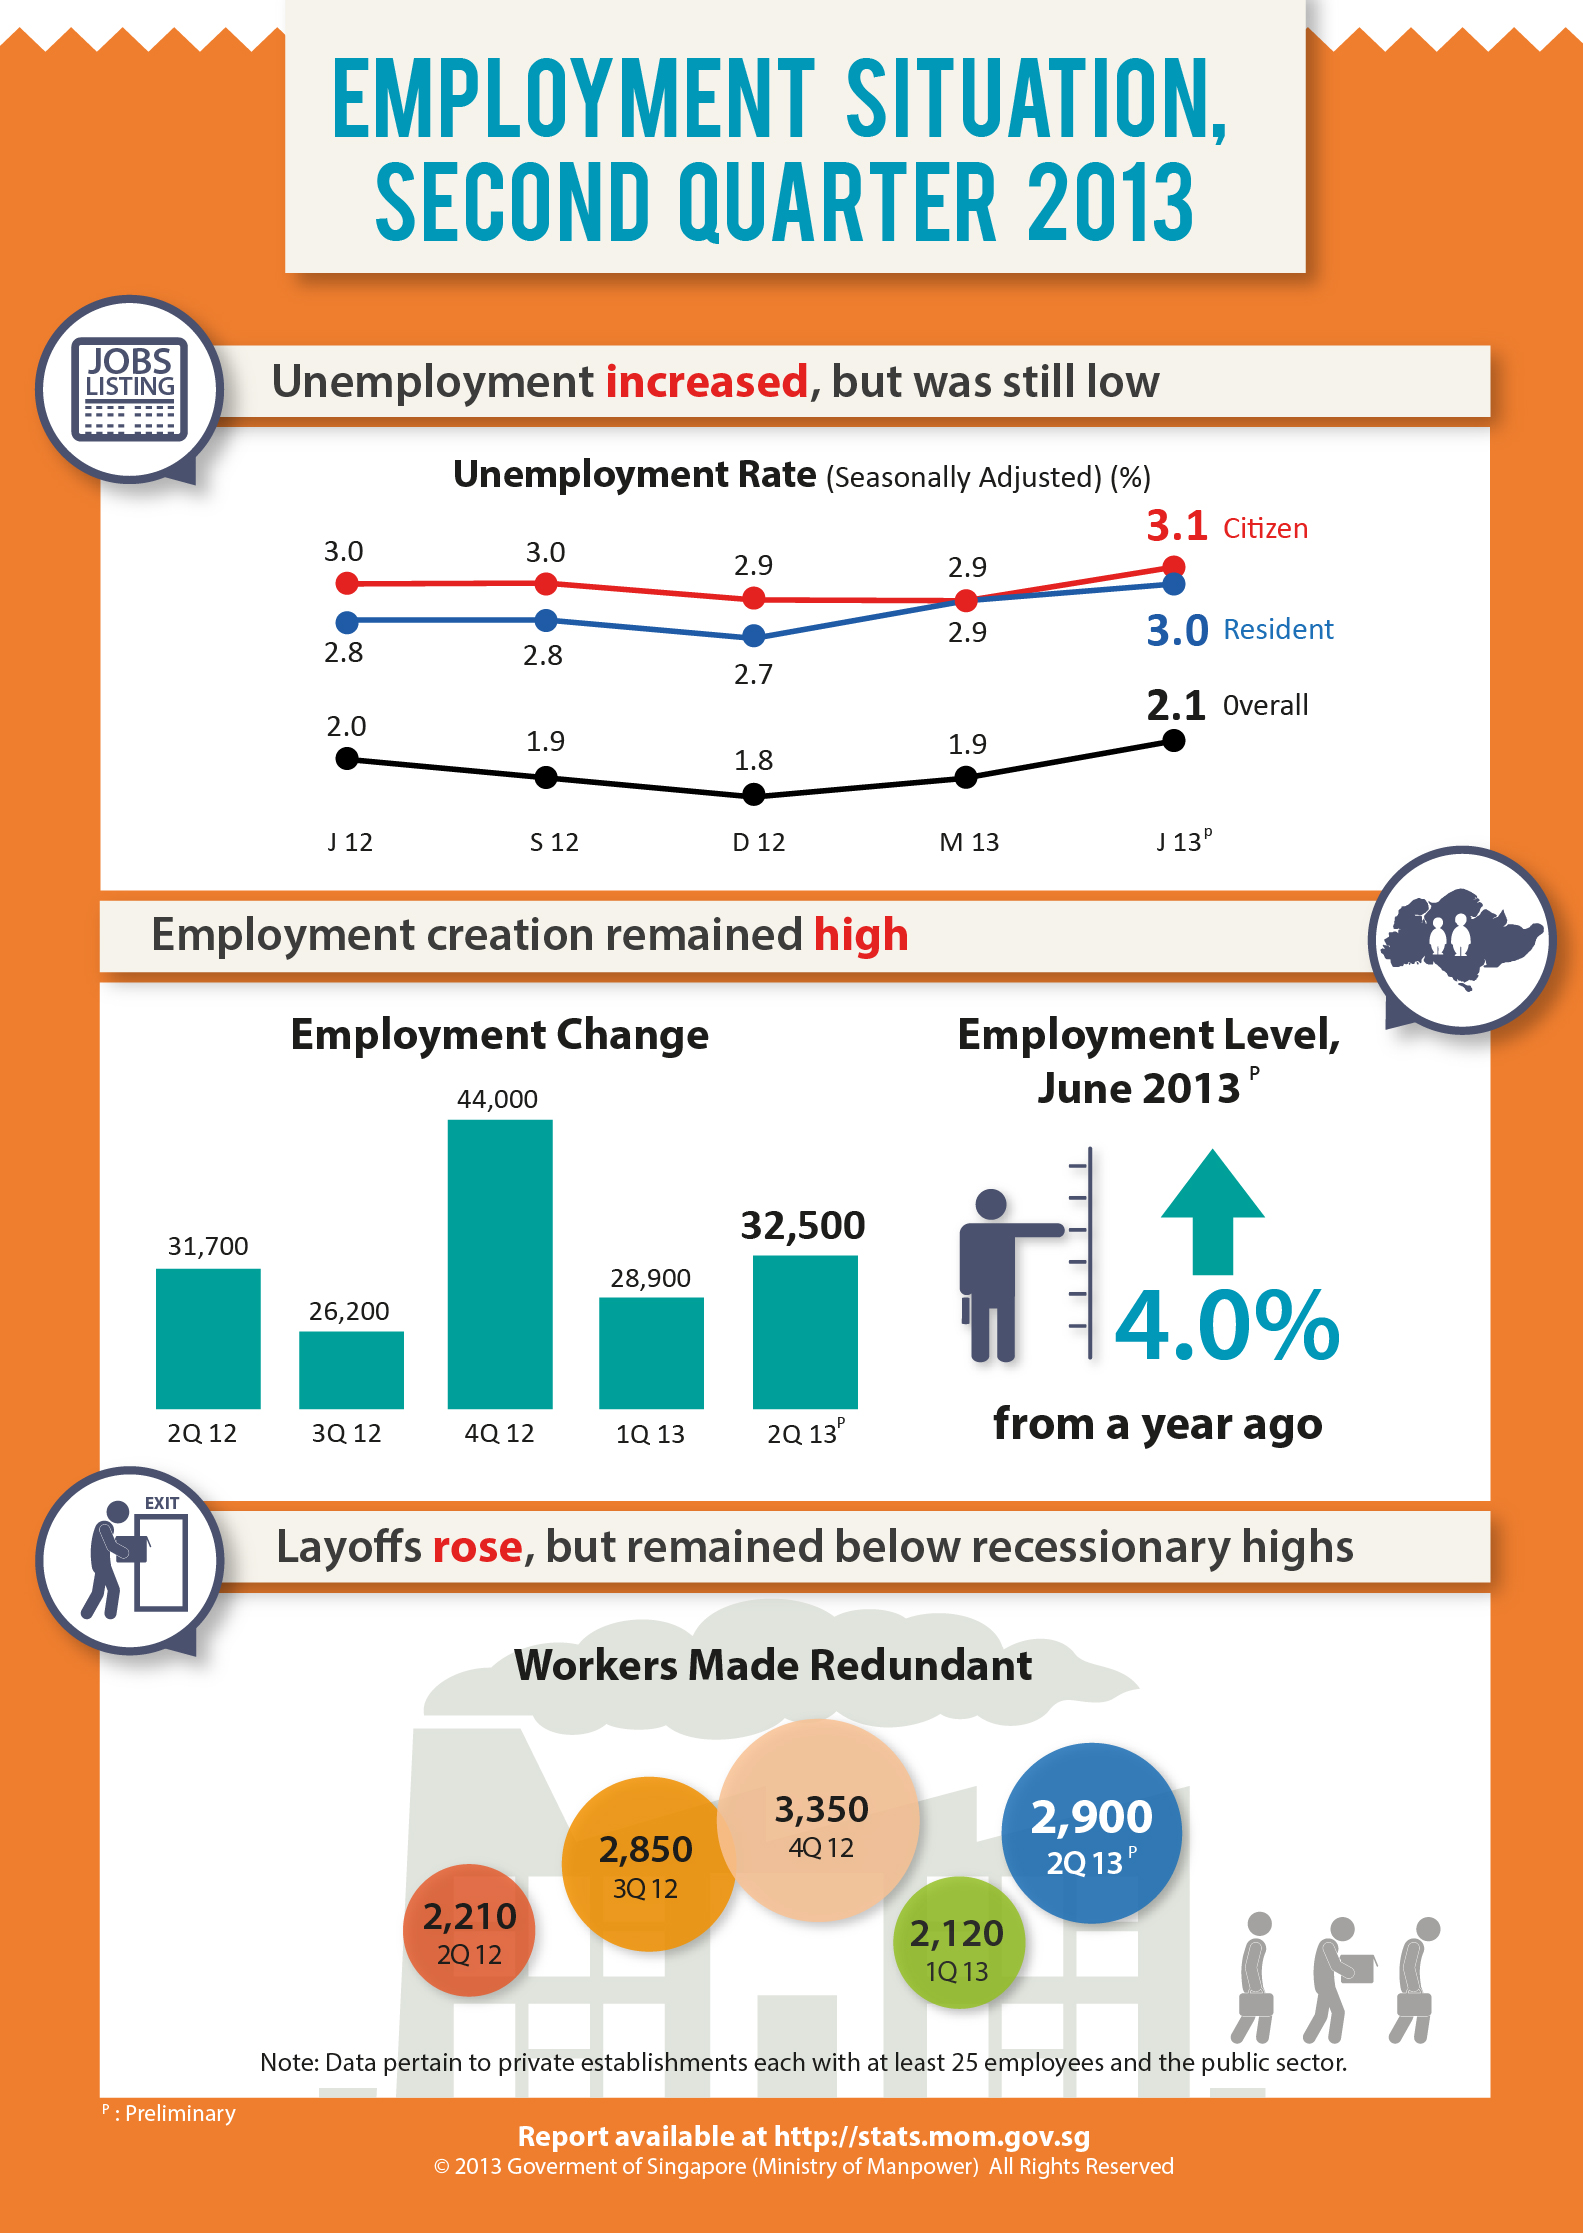 mrsd_infographic_employment_situation_Q213_310713 More Jobs, but Higher Unemployment and Layoffs in Q2 2013